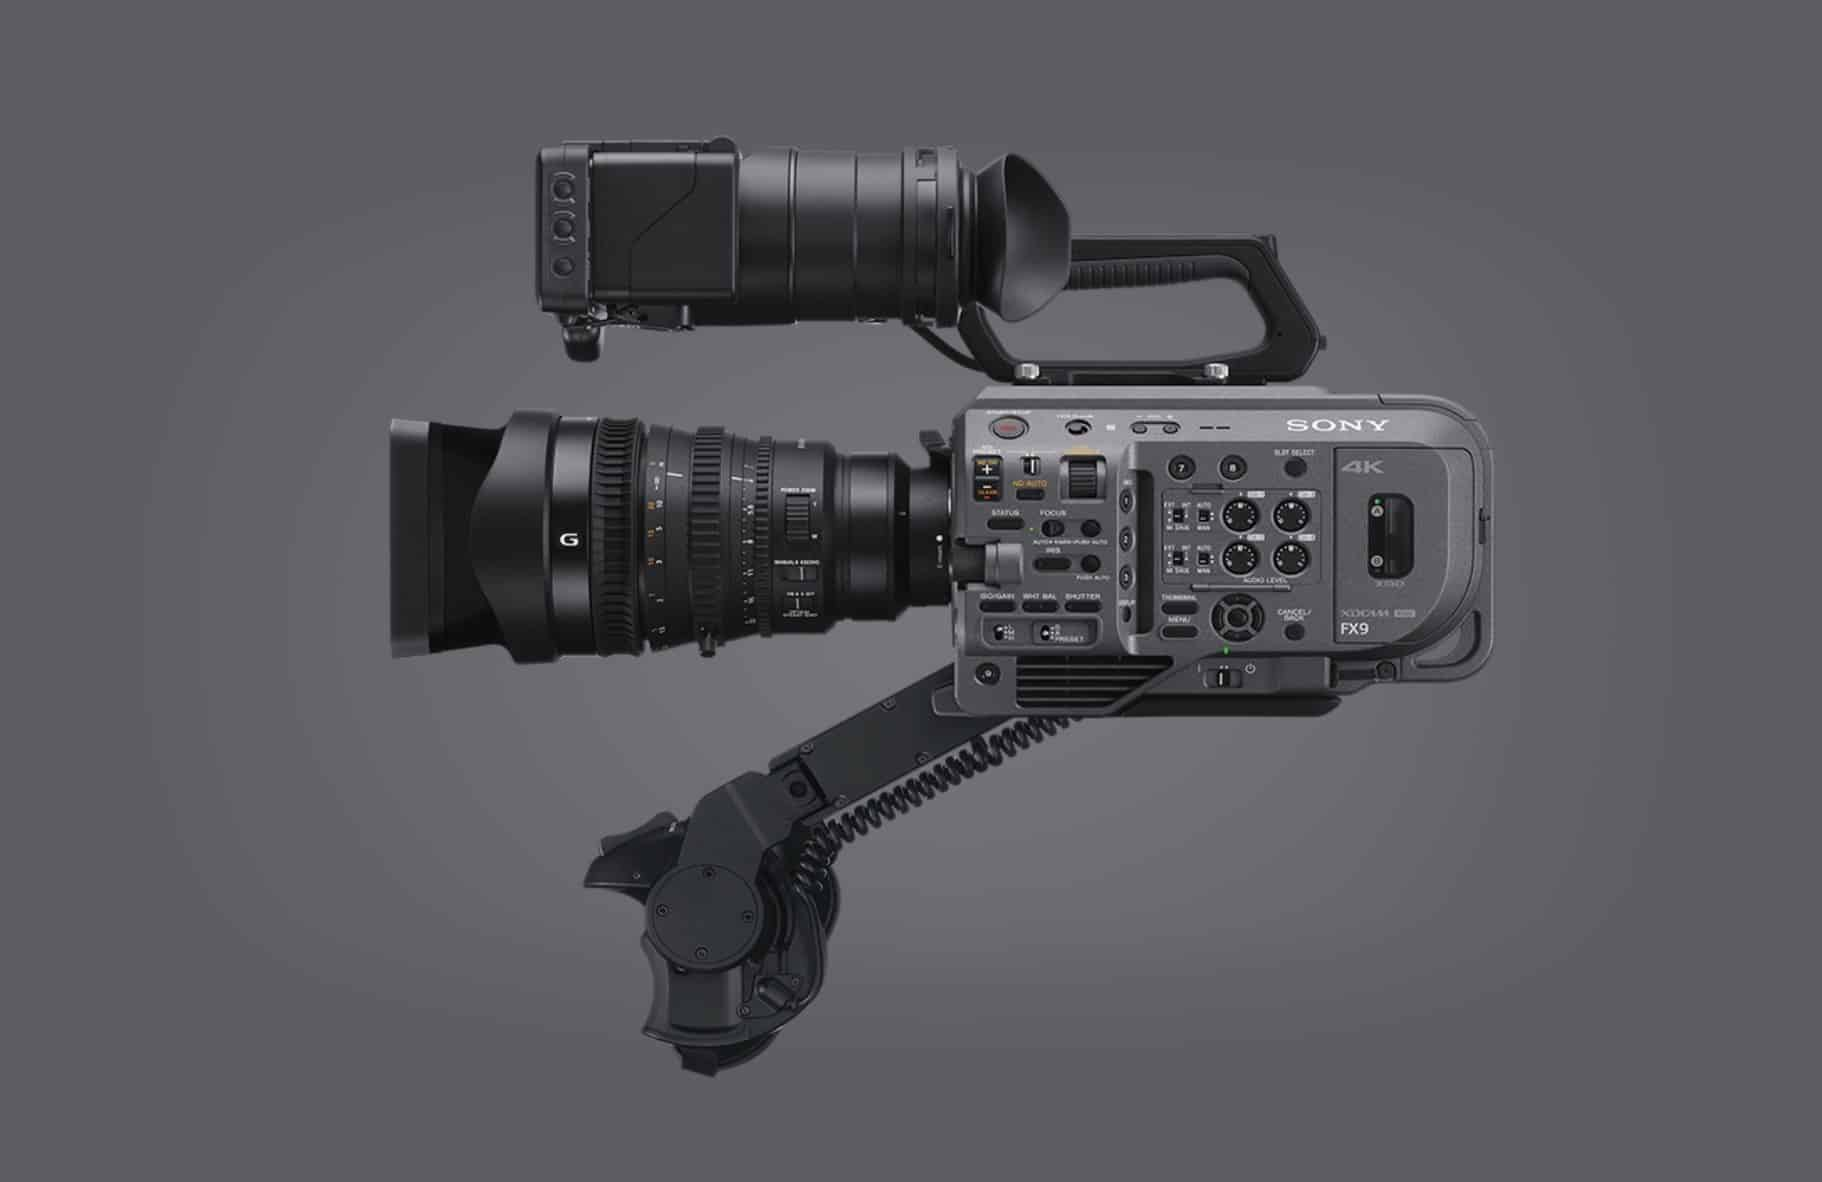 Sony FX9 6K Full-frame camcorder will be available towards the end of 2019